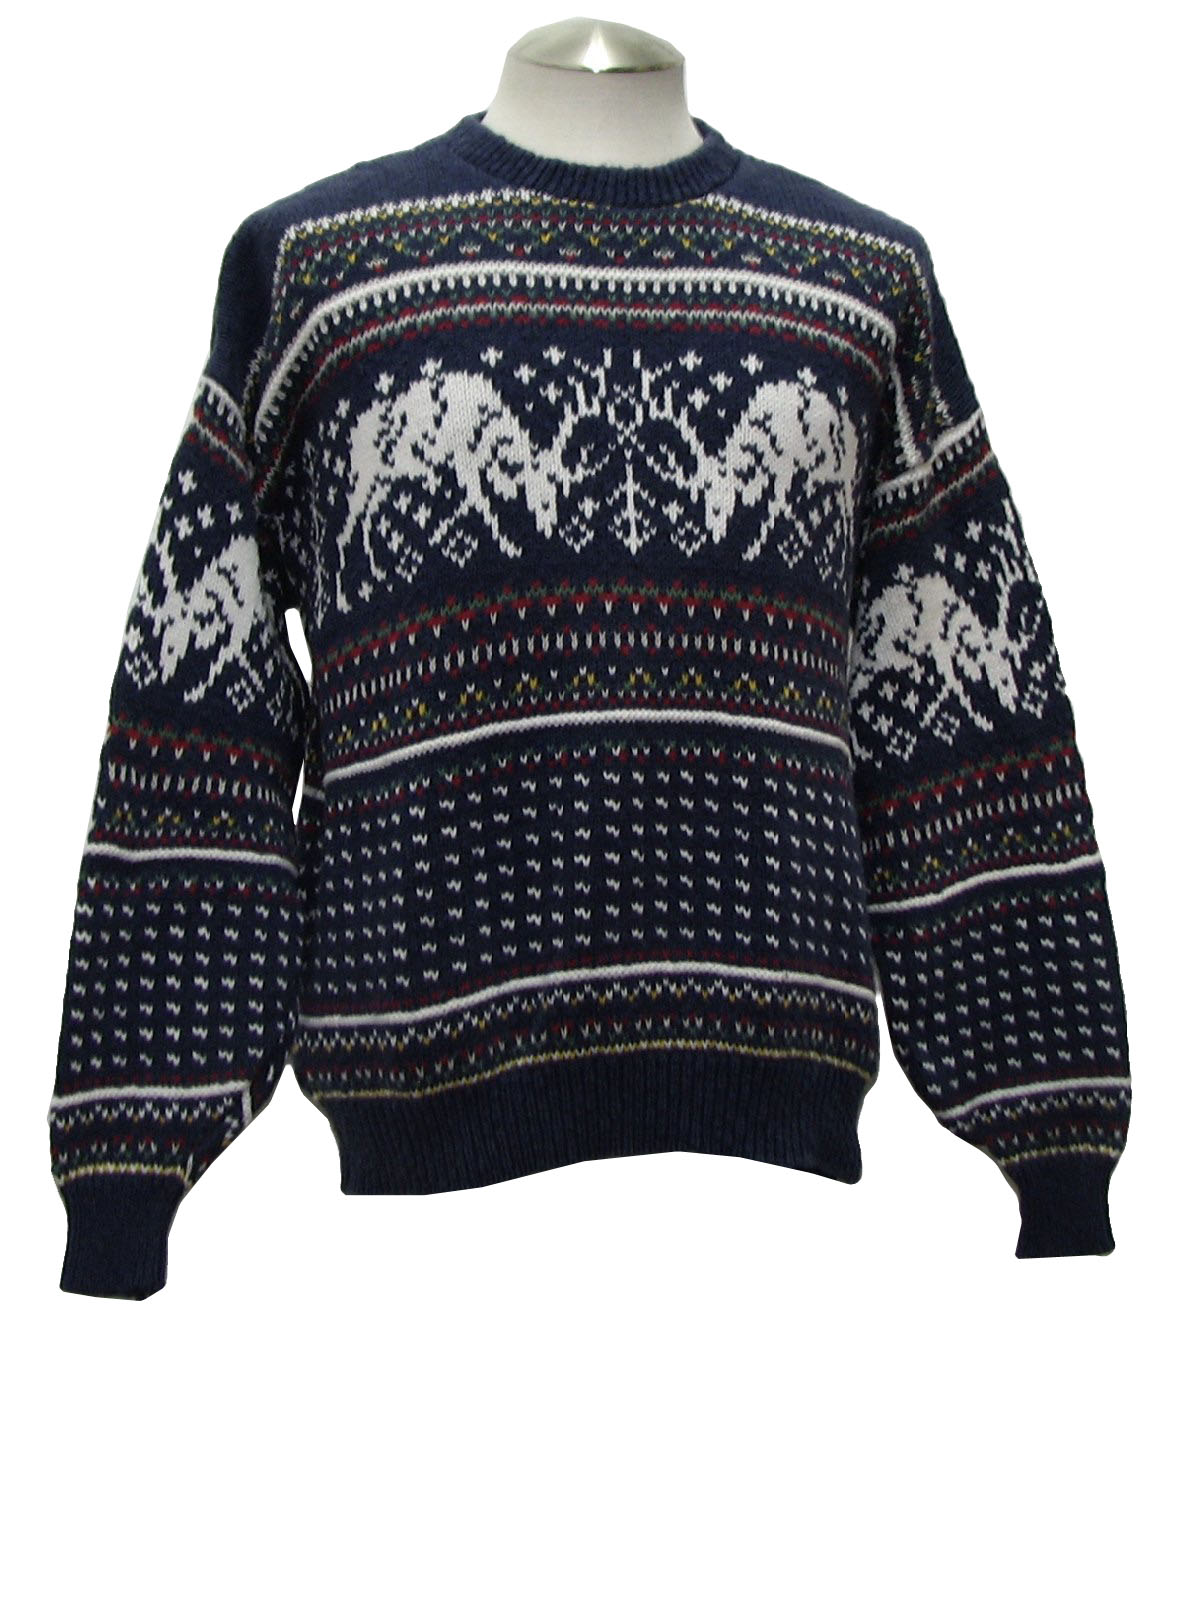 Mens Classic Christmas Sweater: -American Eagle Outfitters- Mens ...